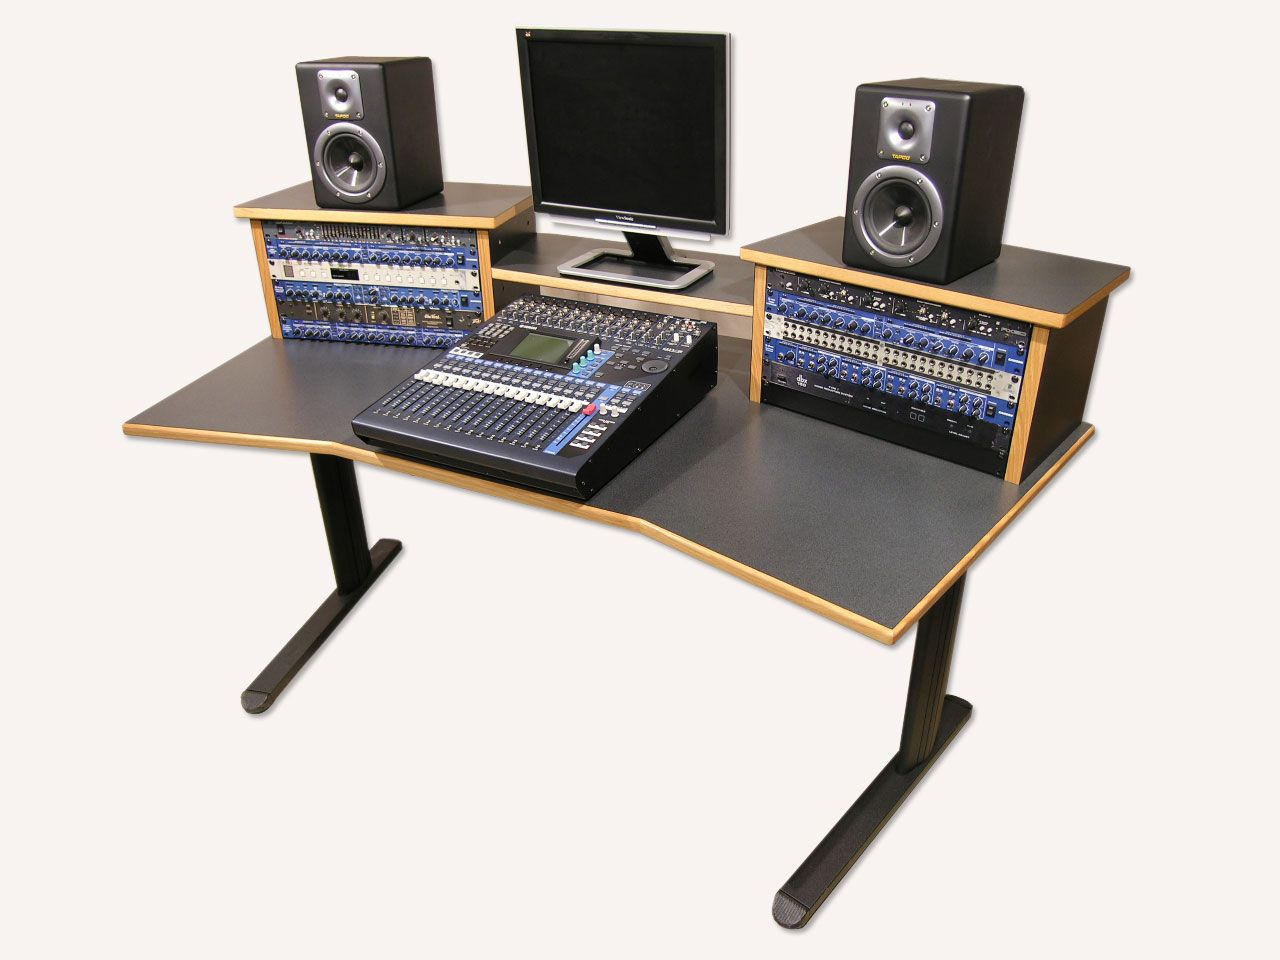 Swell How To Build A Home Recording Studio On A Budget Stayonbeat Com Largest Home Design Picture Inspirations Pitcheantrous